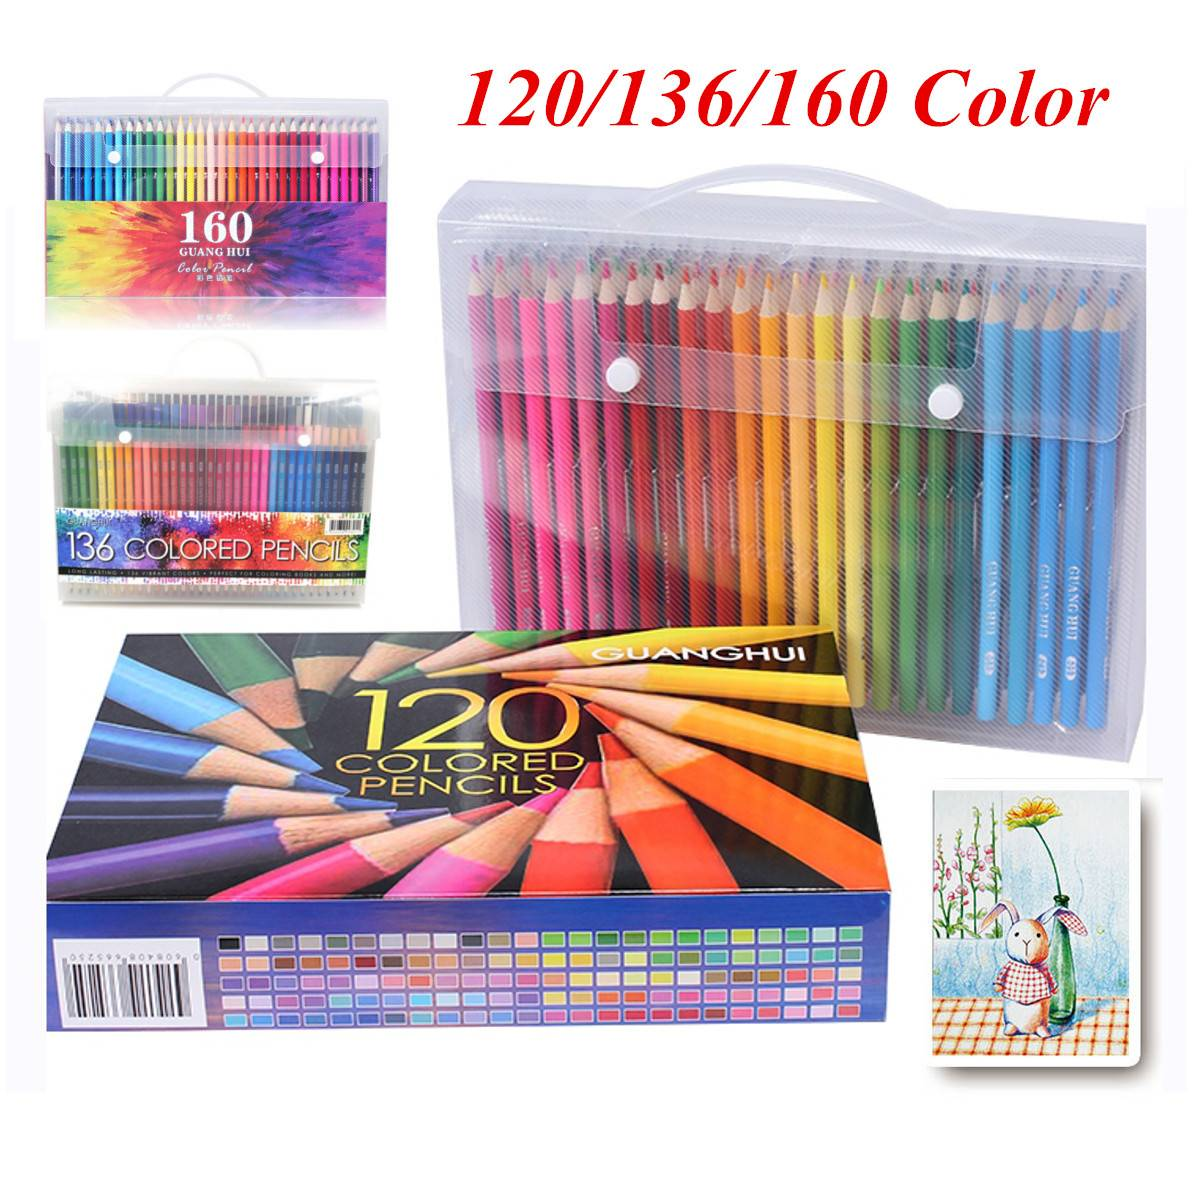 Professional Pencil Set Wood Colored Pencil Drawing Pencils For School Office Artist Painting Sketch Supplies 120/136/160 Colors